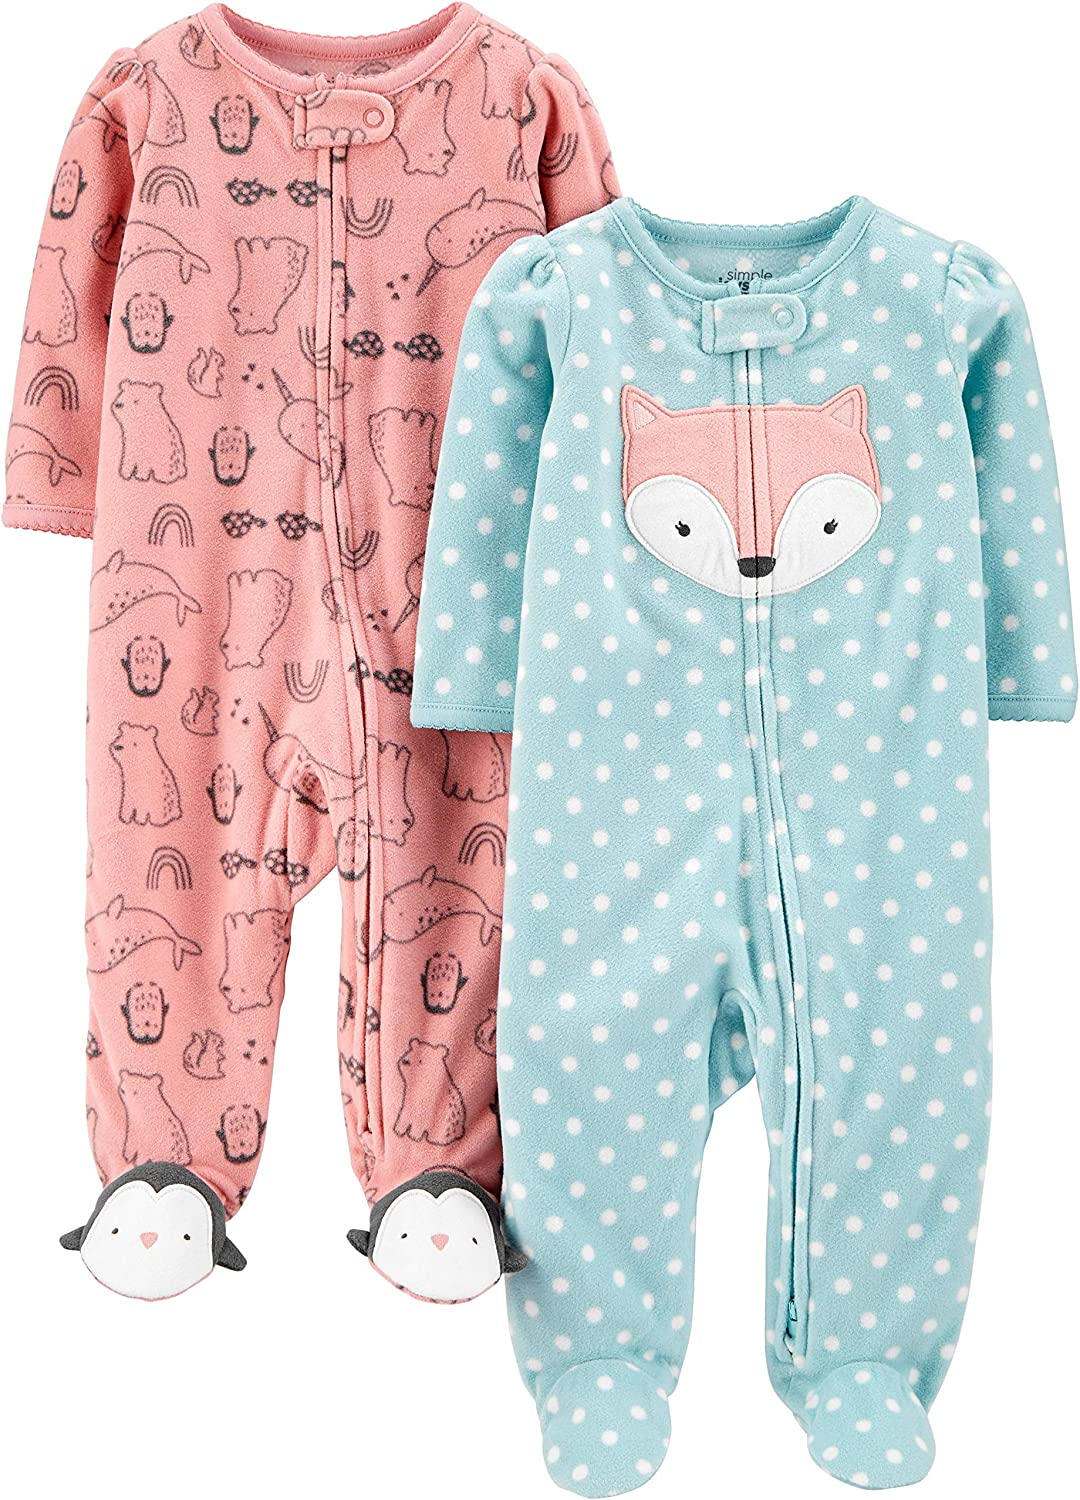 Volpe//Animale Rosa Simple Joys by Carters 2-Pack Fleece Footed Sleep Play Infant-And-Toddler-Bodysuit-Footies 0-3 Months